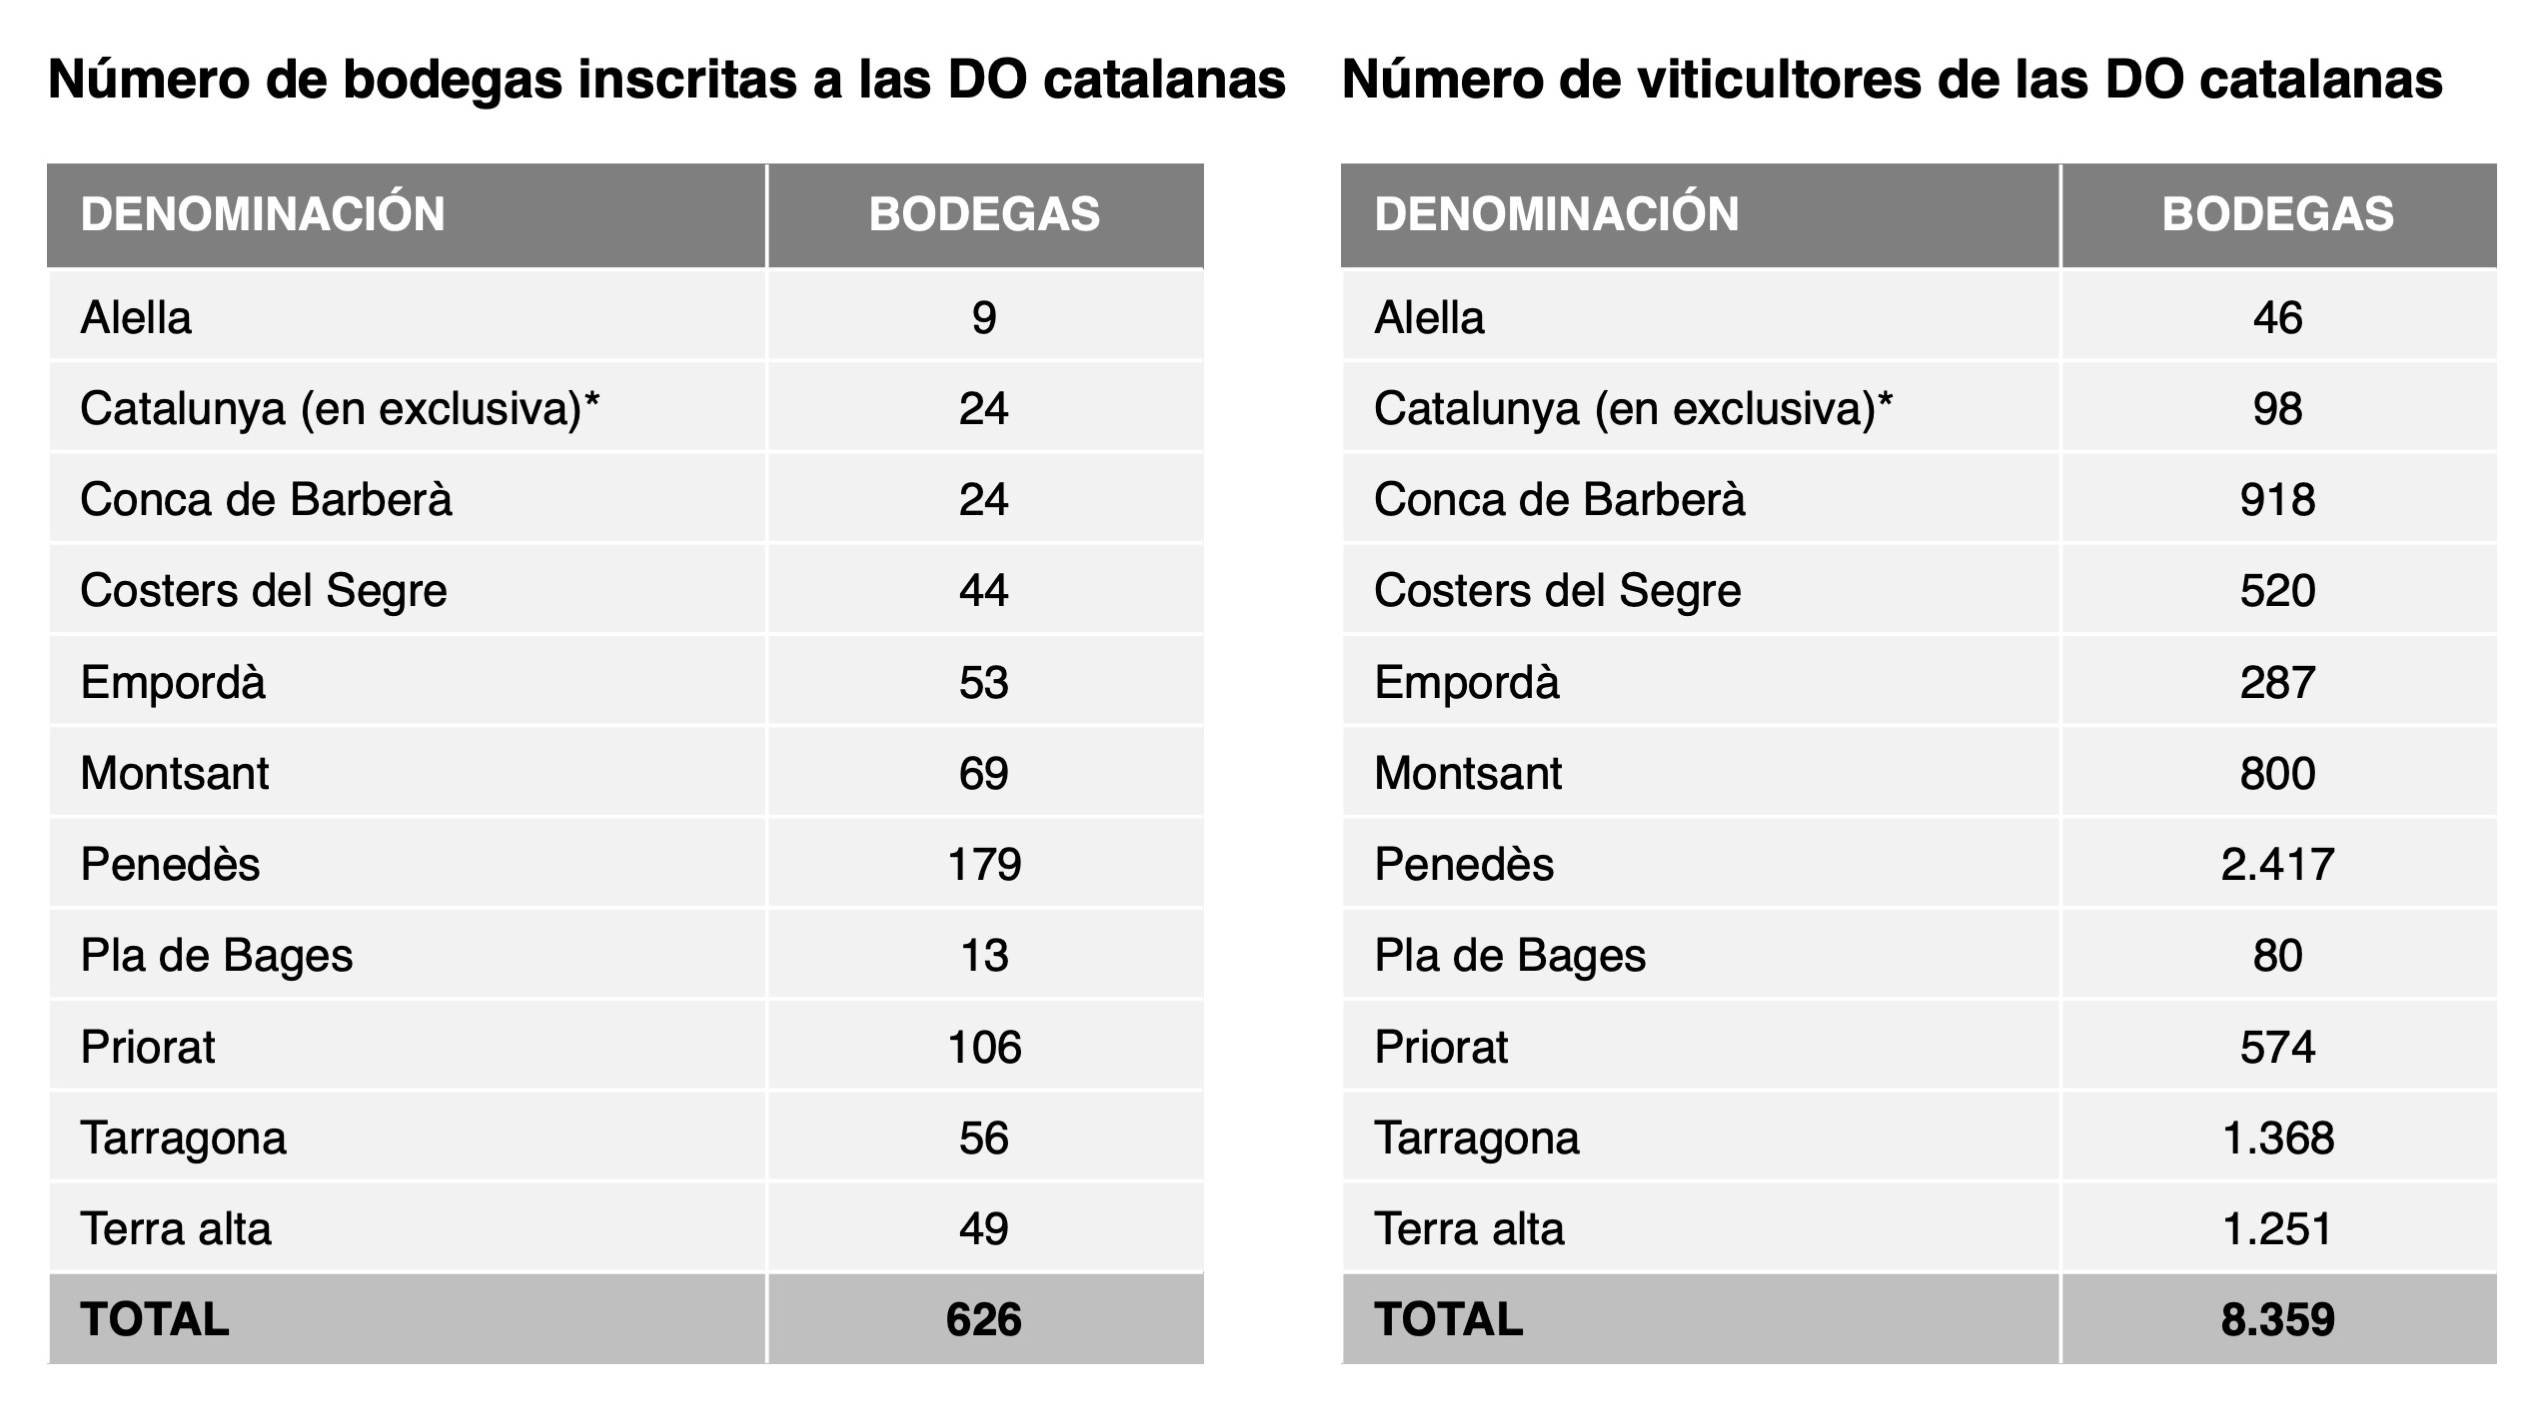 bodegas per DO's Catalunya cast